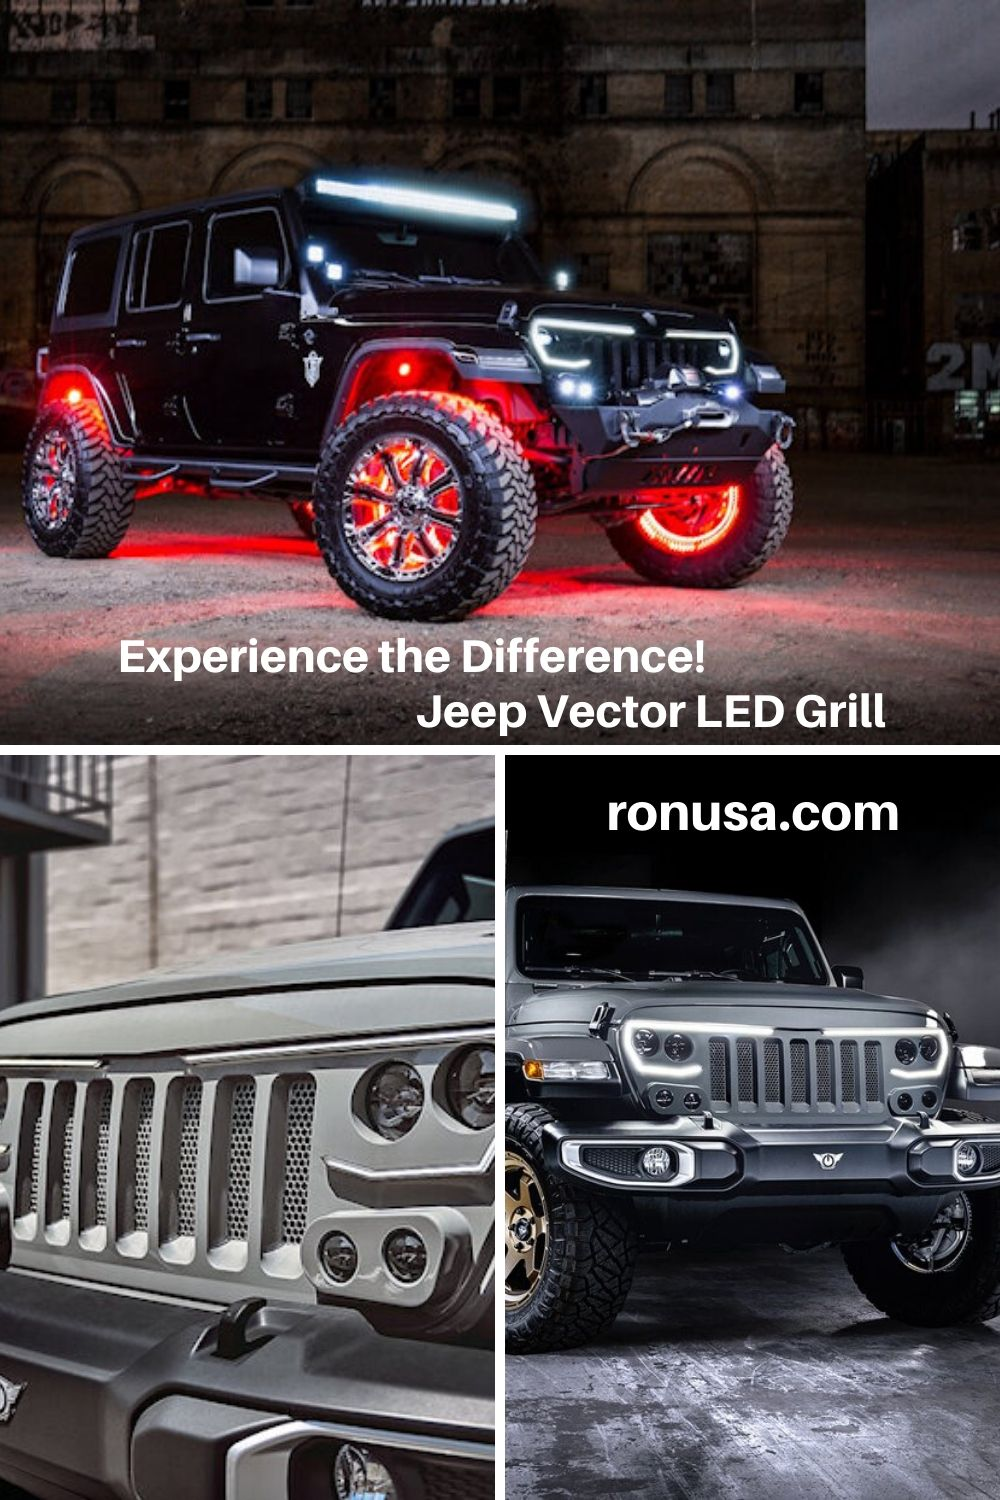 Experience The Jeep Vector Grill Difference In 2020 Jeep Grill Jeep Jeep Owners